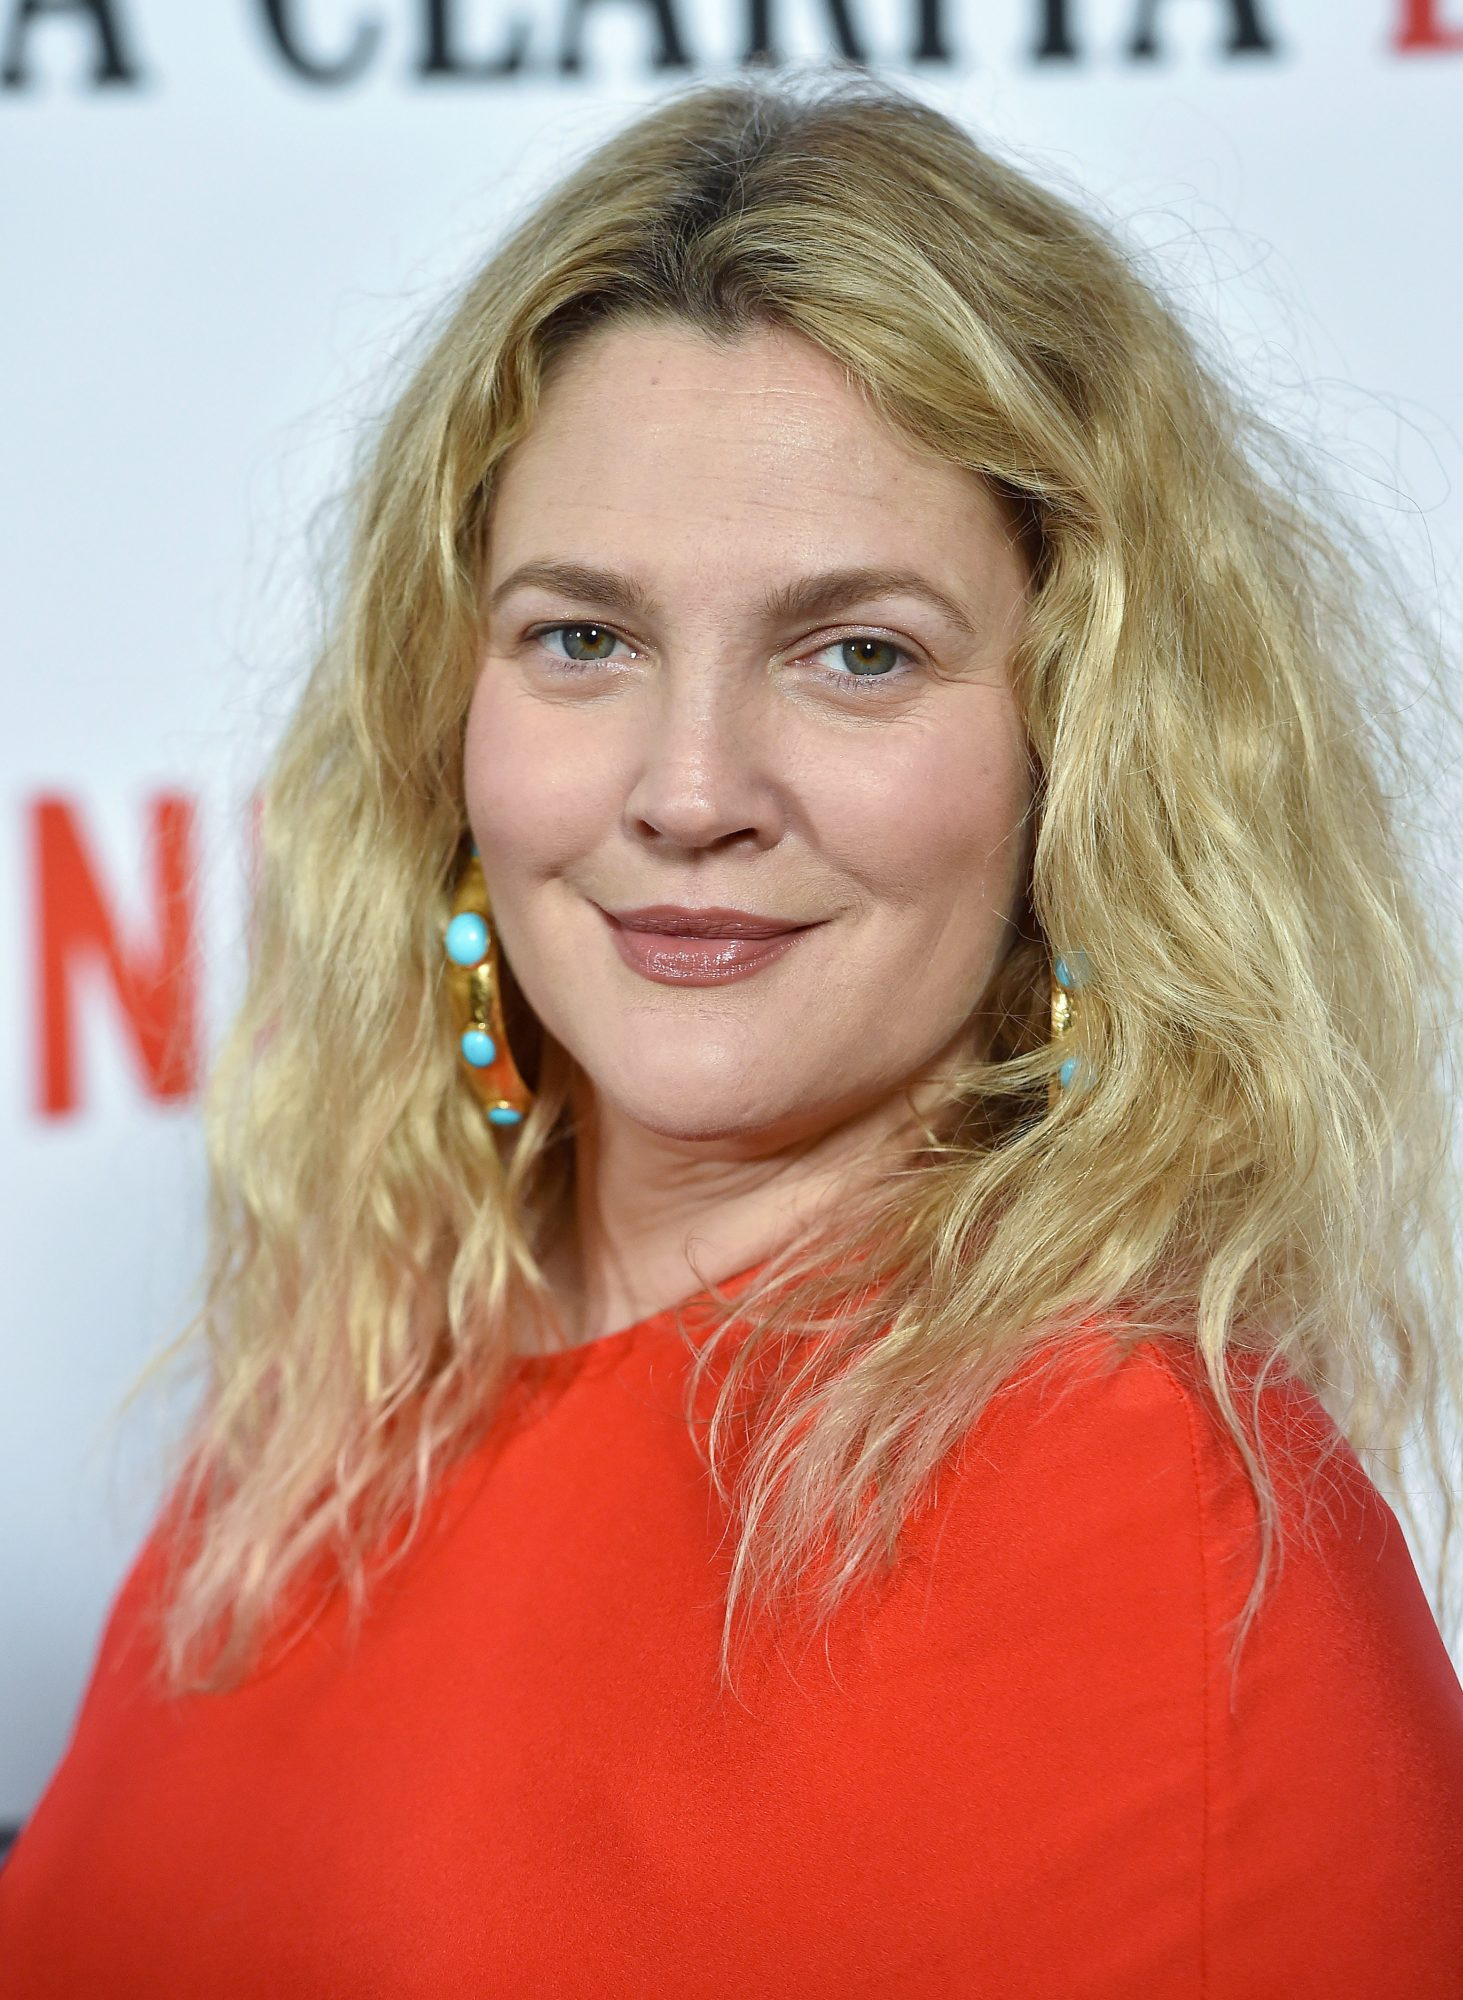 Drew Barrymore Loves This Sunscreen That Doesn't Cause ...